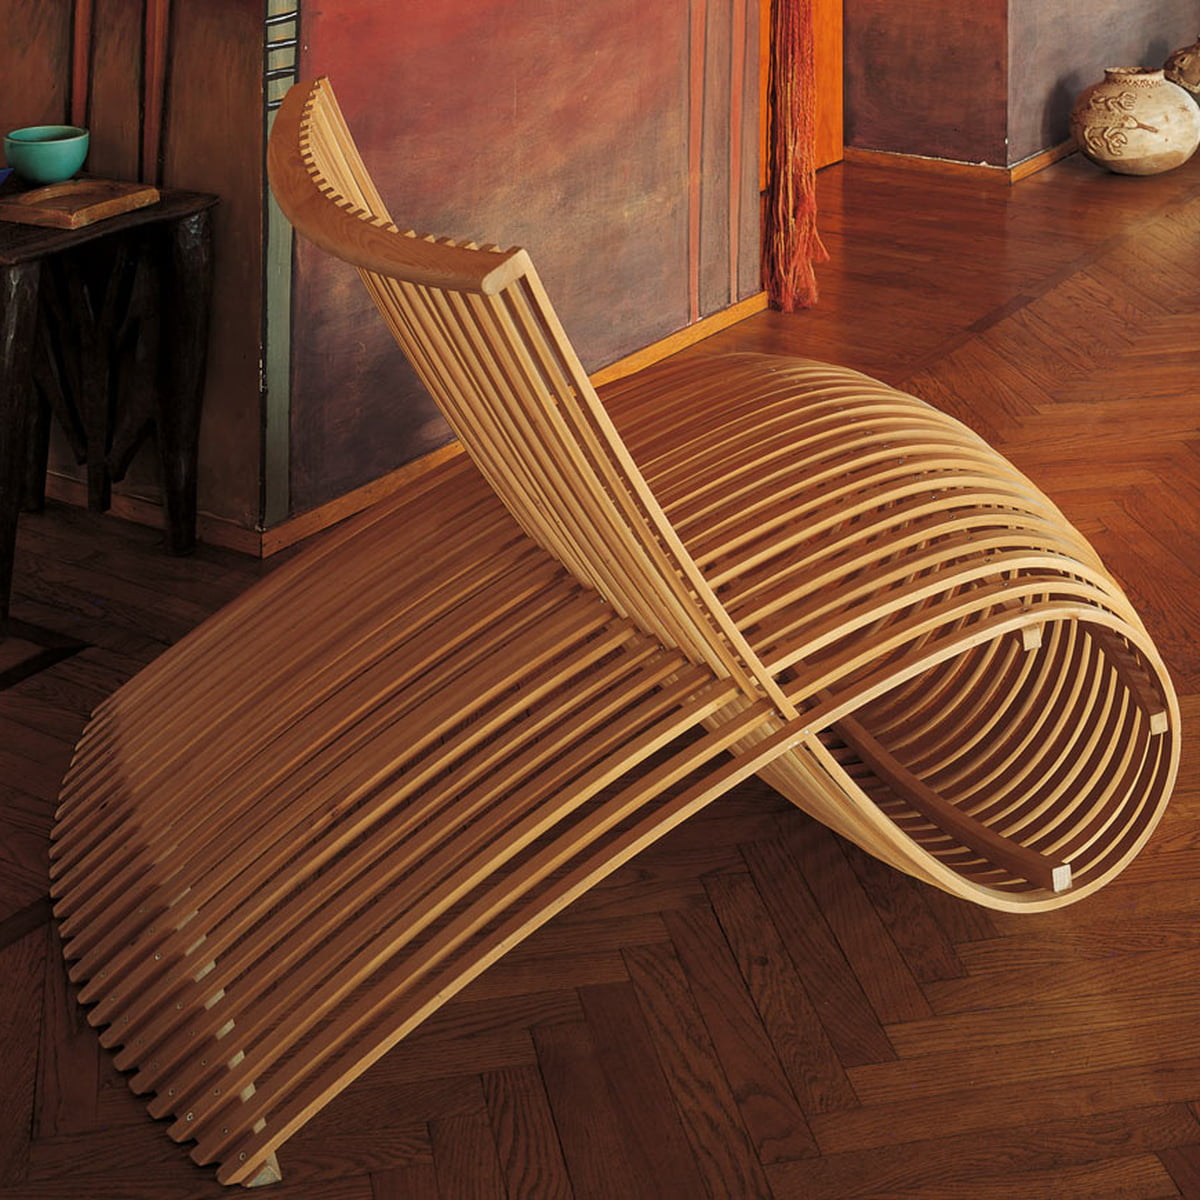 Wooden Chair by Cappellini in the shop